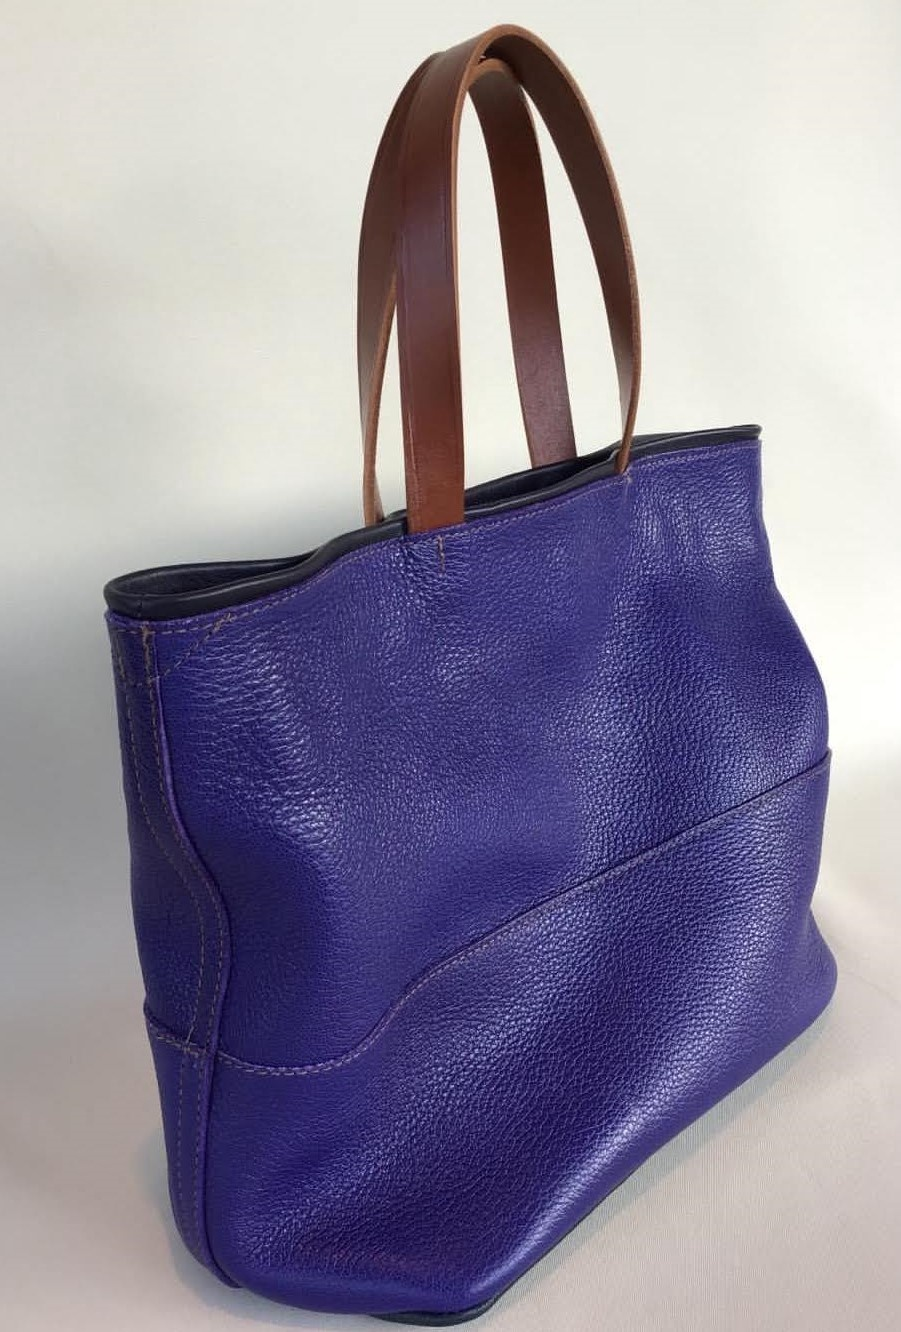 Louvre Bag - Purple Leather